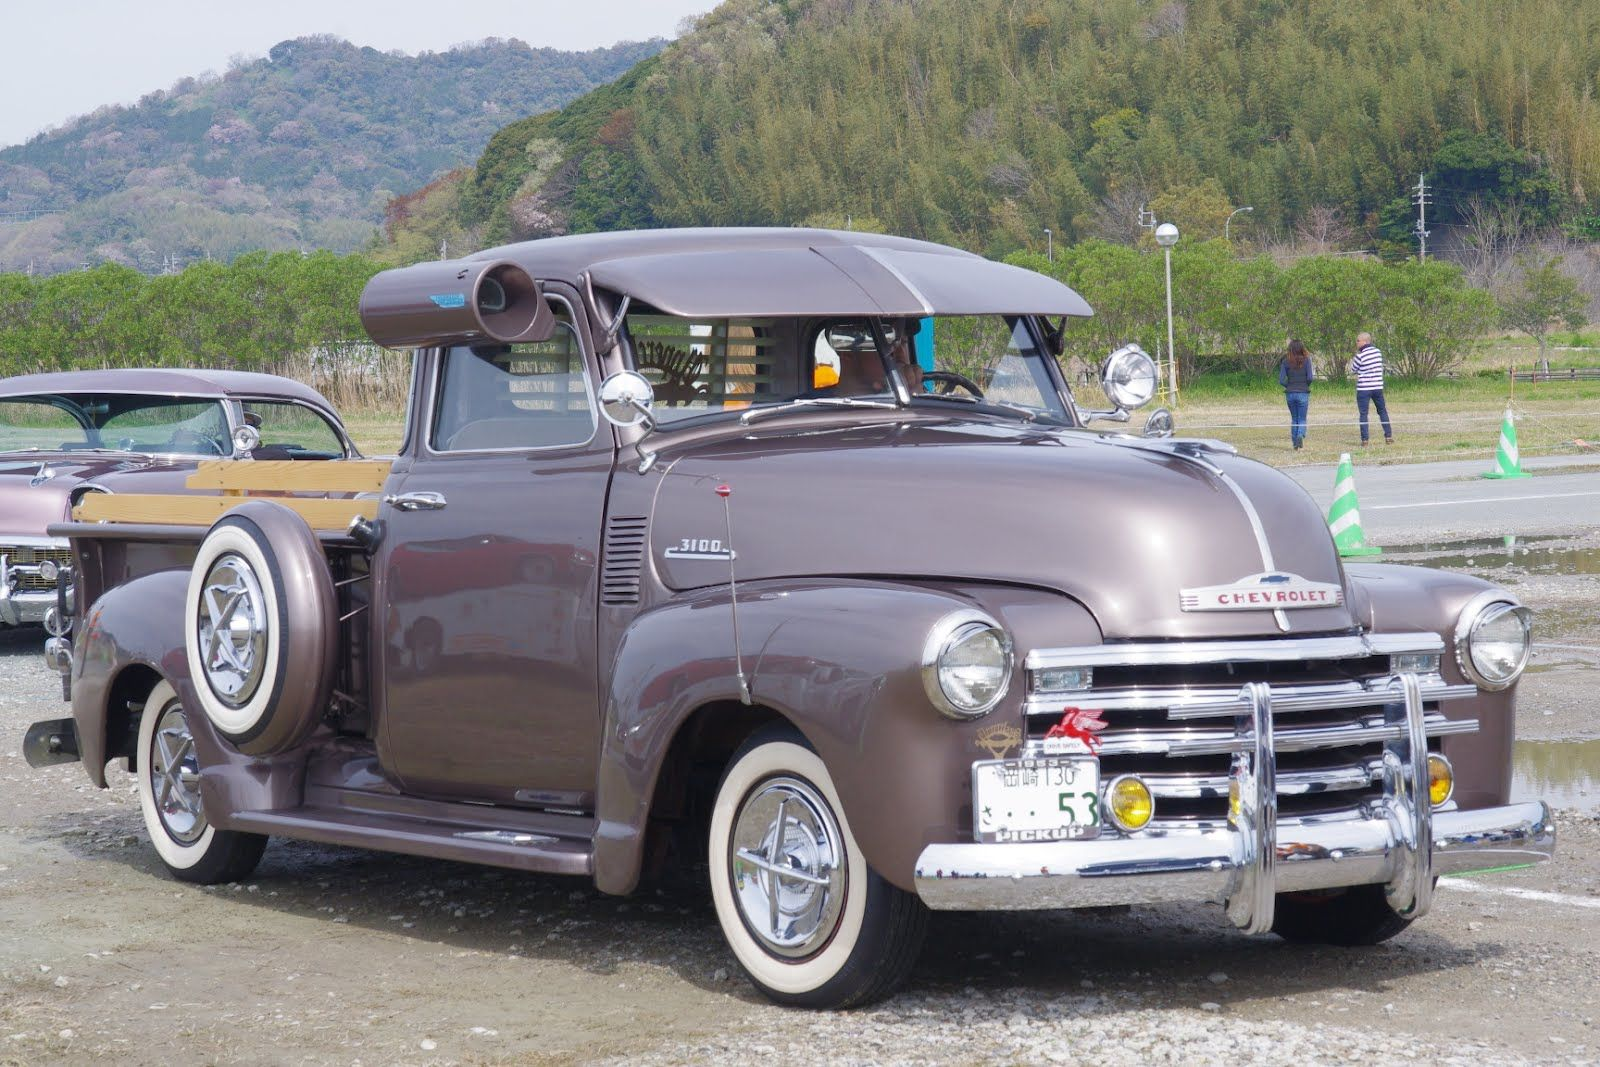 1953 Chevy Pick Up. Not my style but I like the air